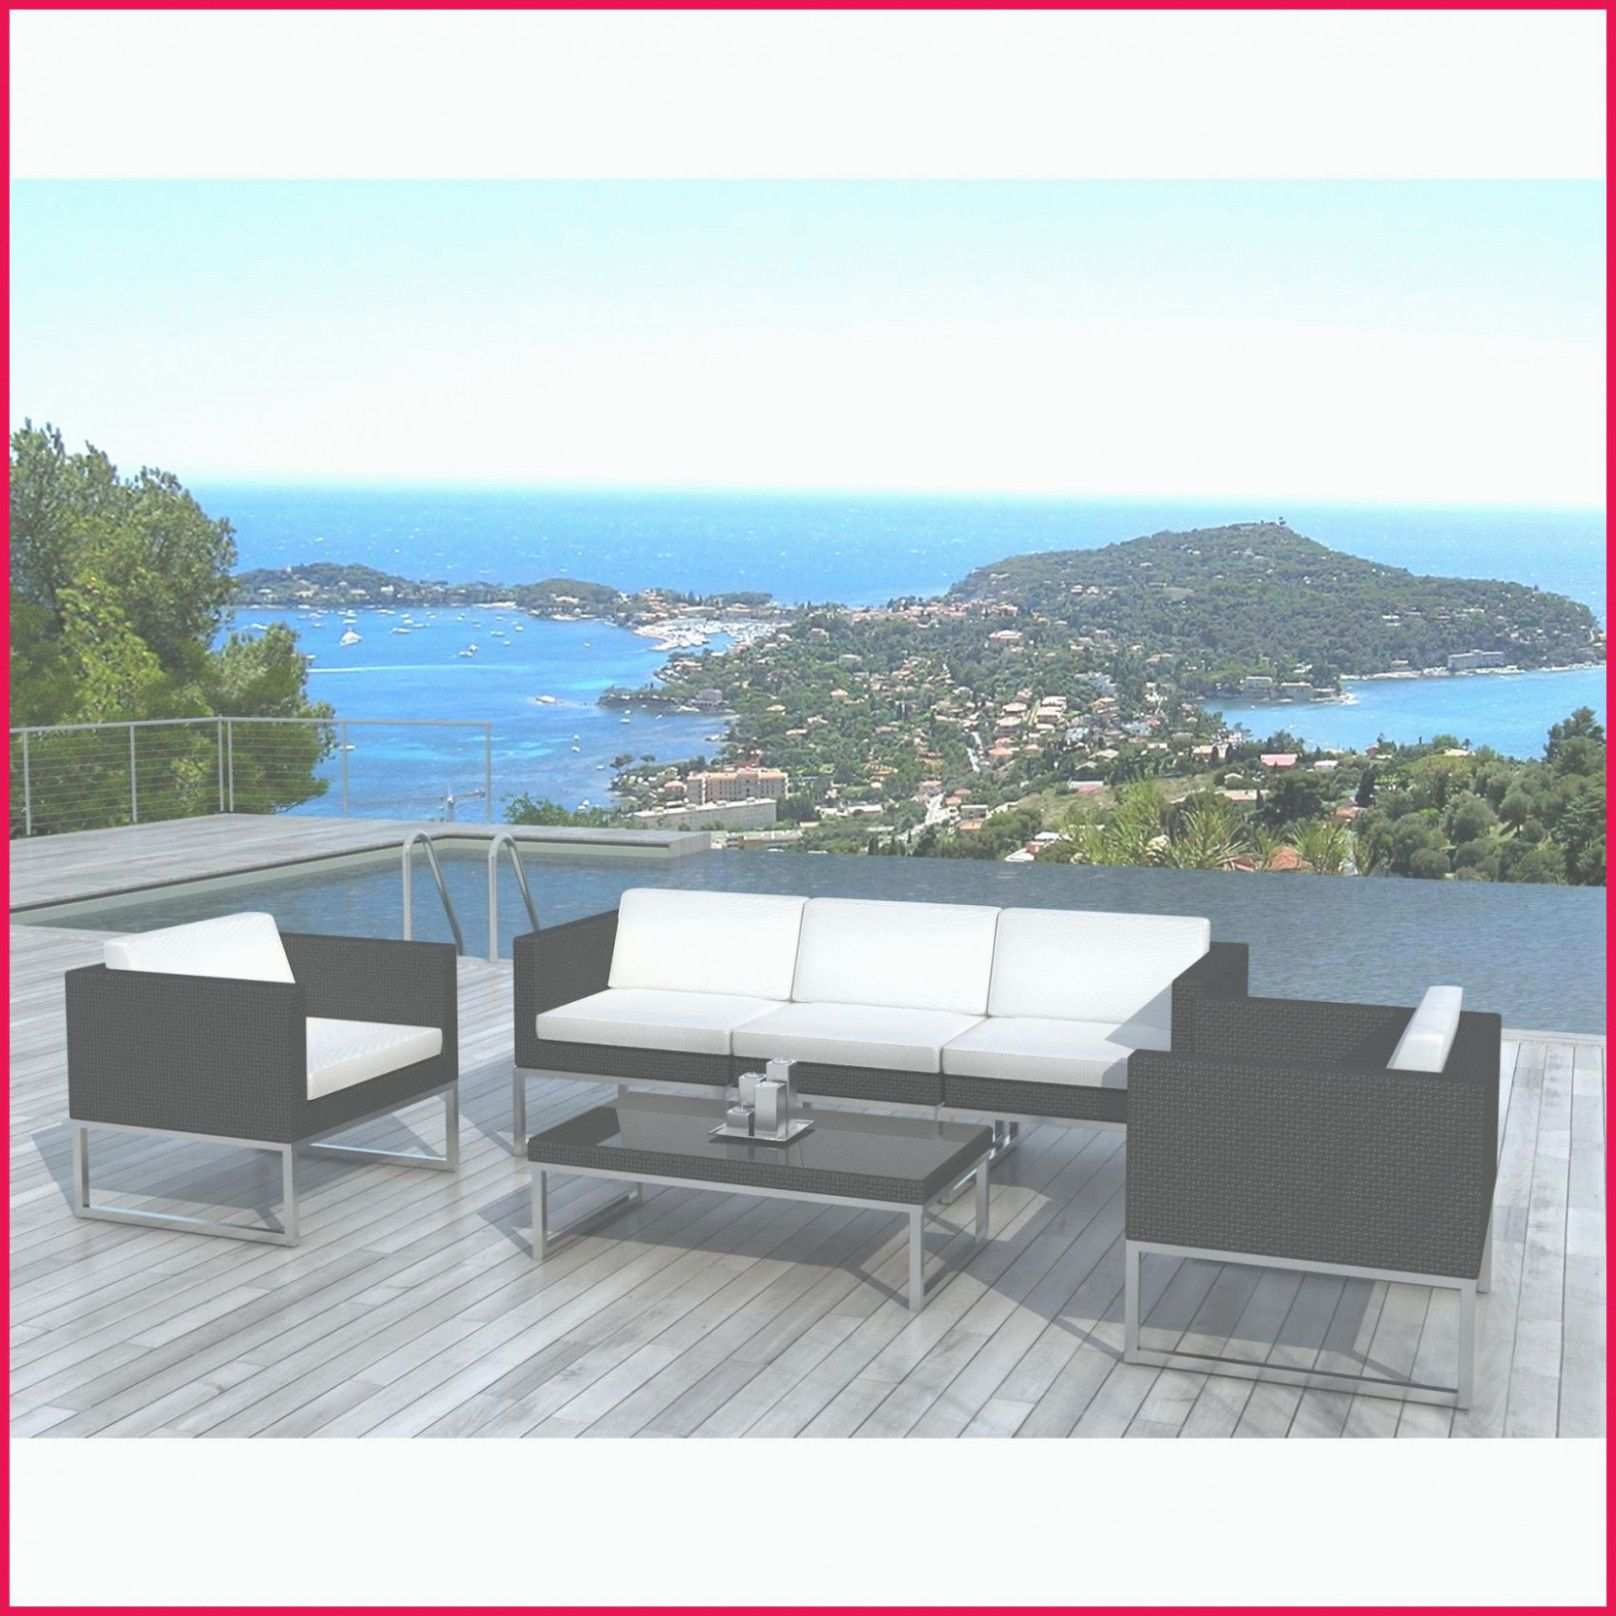 Salon De Jardin Super U Check More At Https Www Epalumni Com Salon De Jardin Super U In 2020 Outdoor Furniture Sets Outdoor Furniture Outdoor Sofa